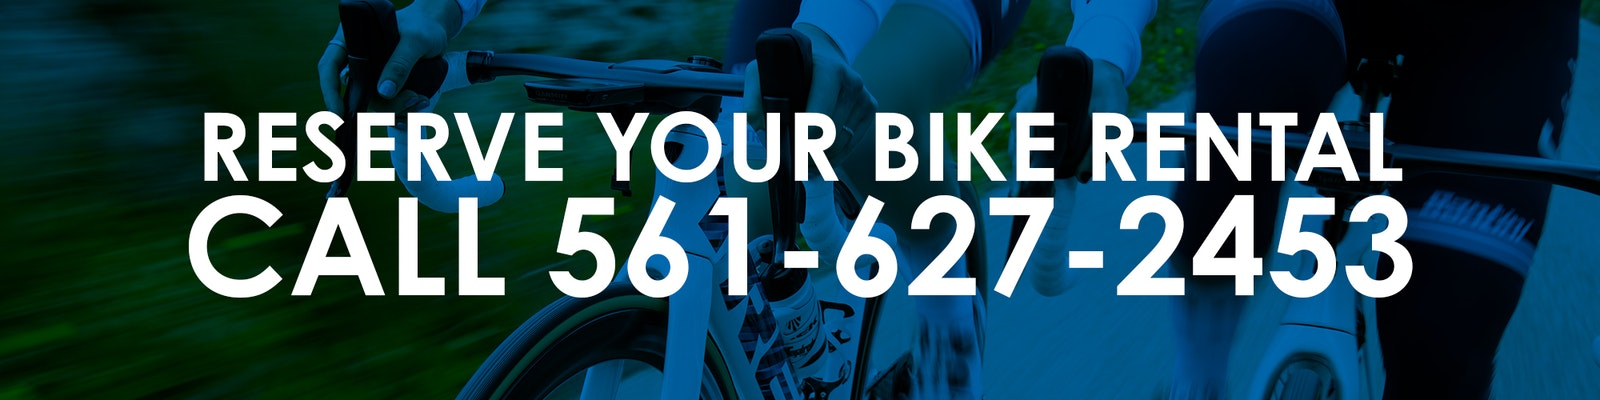 Reserve your bike rental. Call 561-627-2453